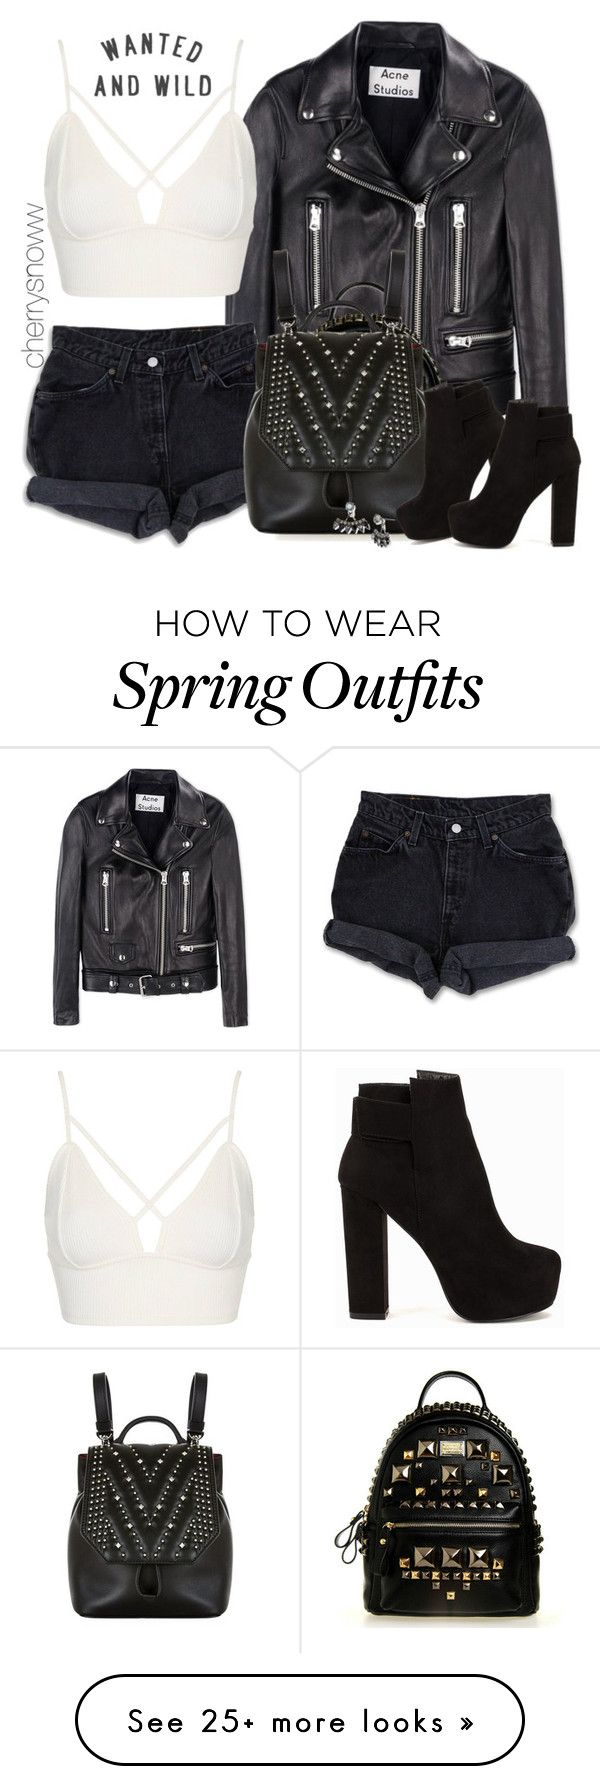 """""""Edgy biker chic spring outfit"""" by cherrysnoww on Polyvore featuring Acne Studios, Levi's, Topshop, MCM, Nly Shoes and DANNIJO"""